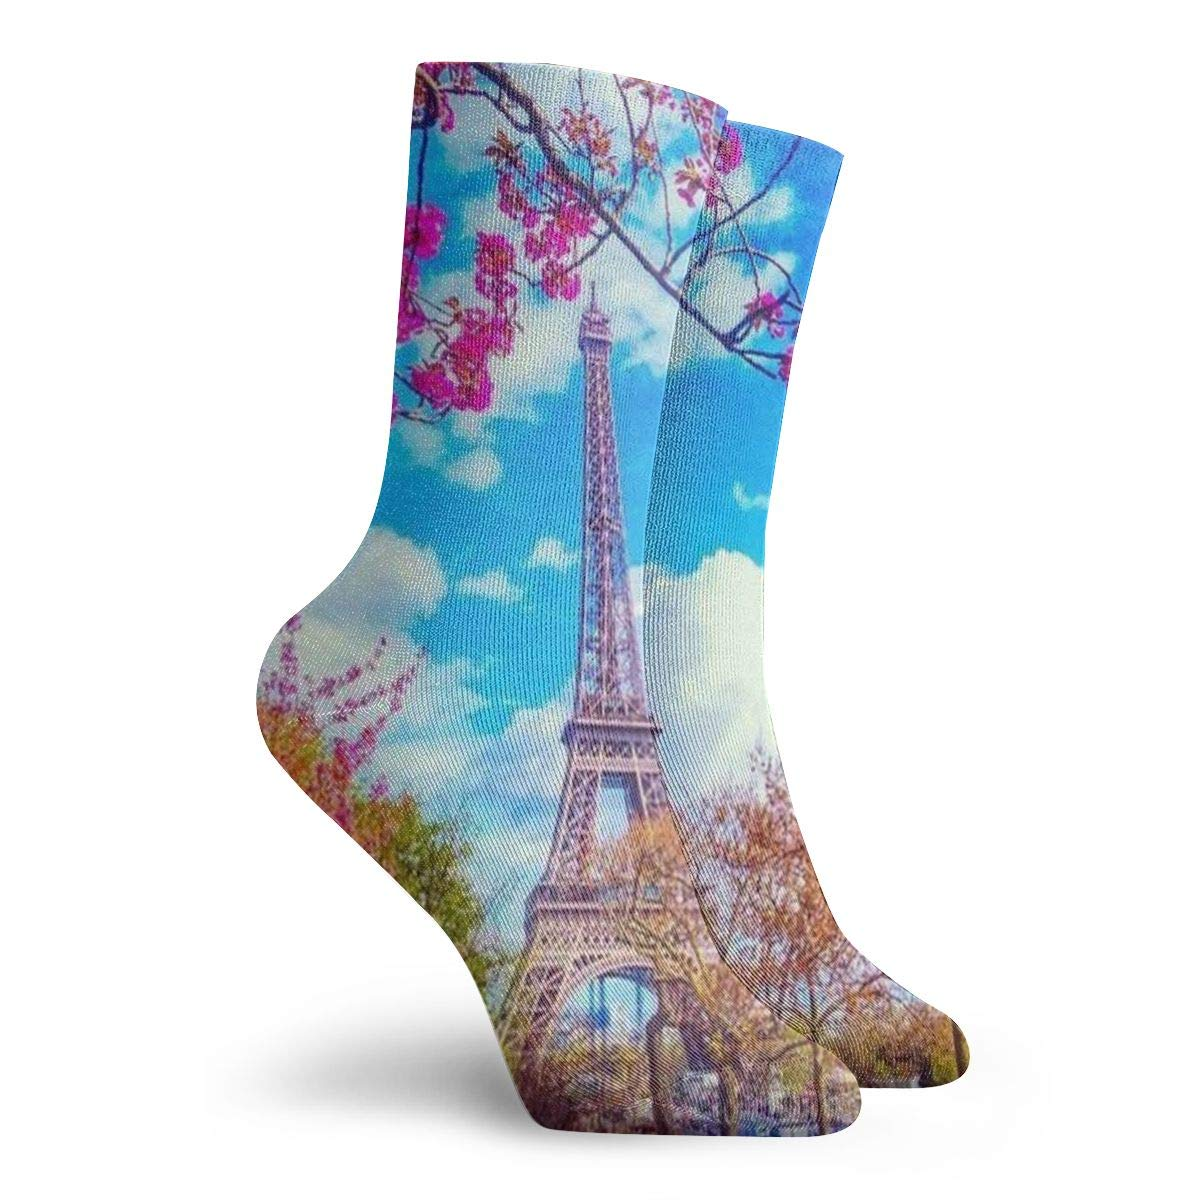 WEEDKEYCAT France Tower Pink Flower Tree Adult Short Socks Cotton Classic Socks for Mens Womens Yoga Hiking Cycling Running Soccer Sports